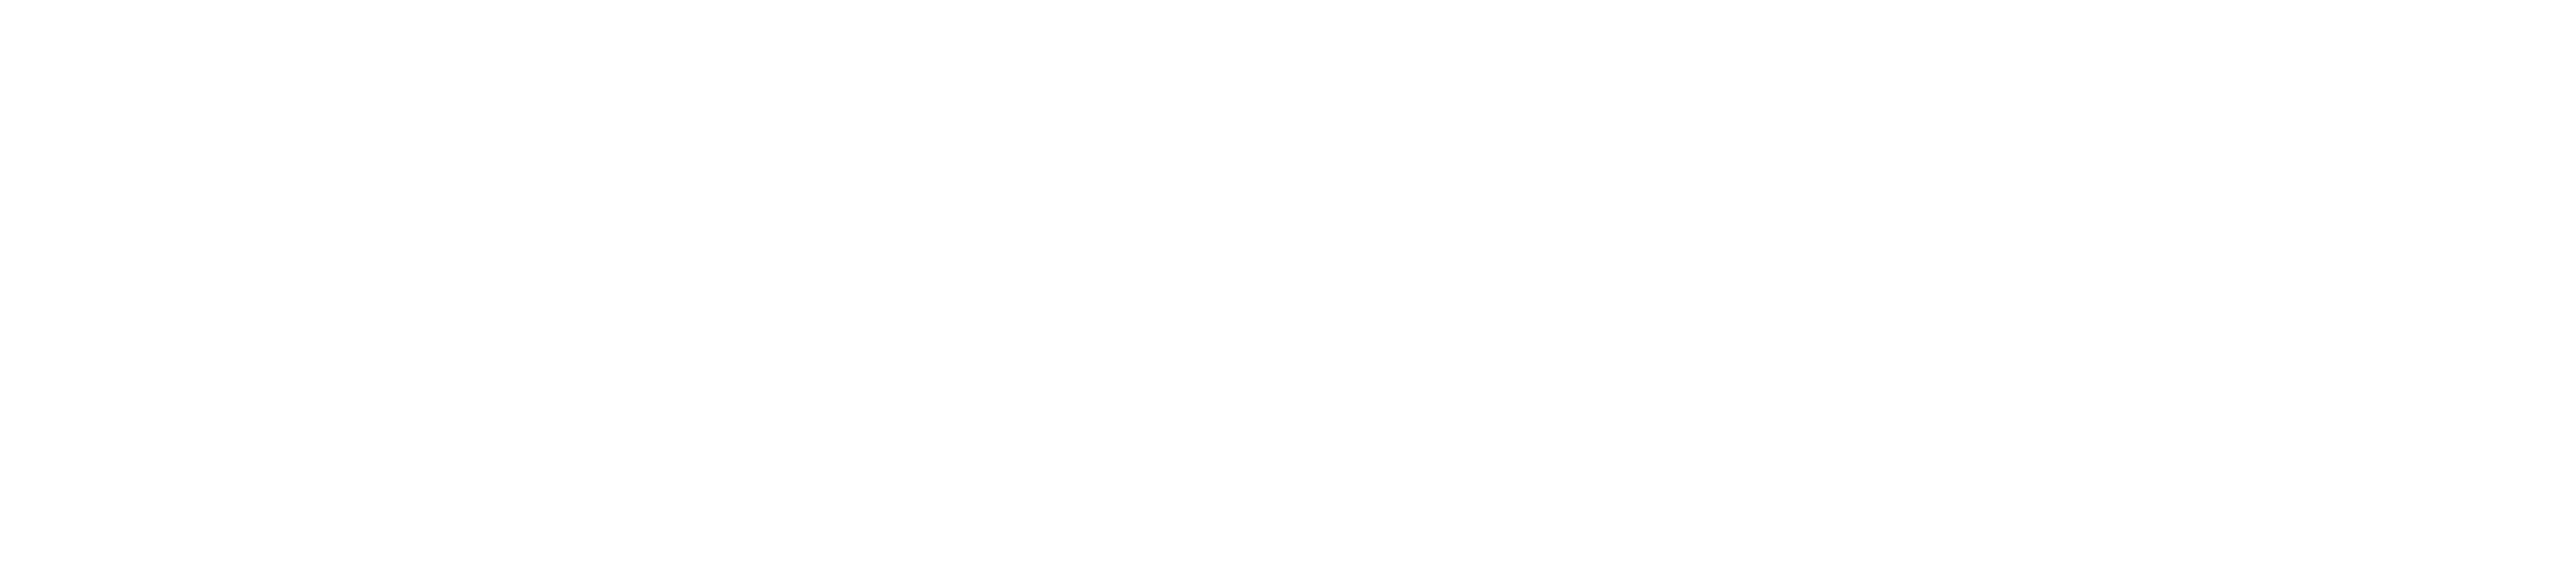 Crown Point Retirement Center